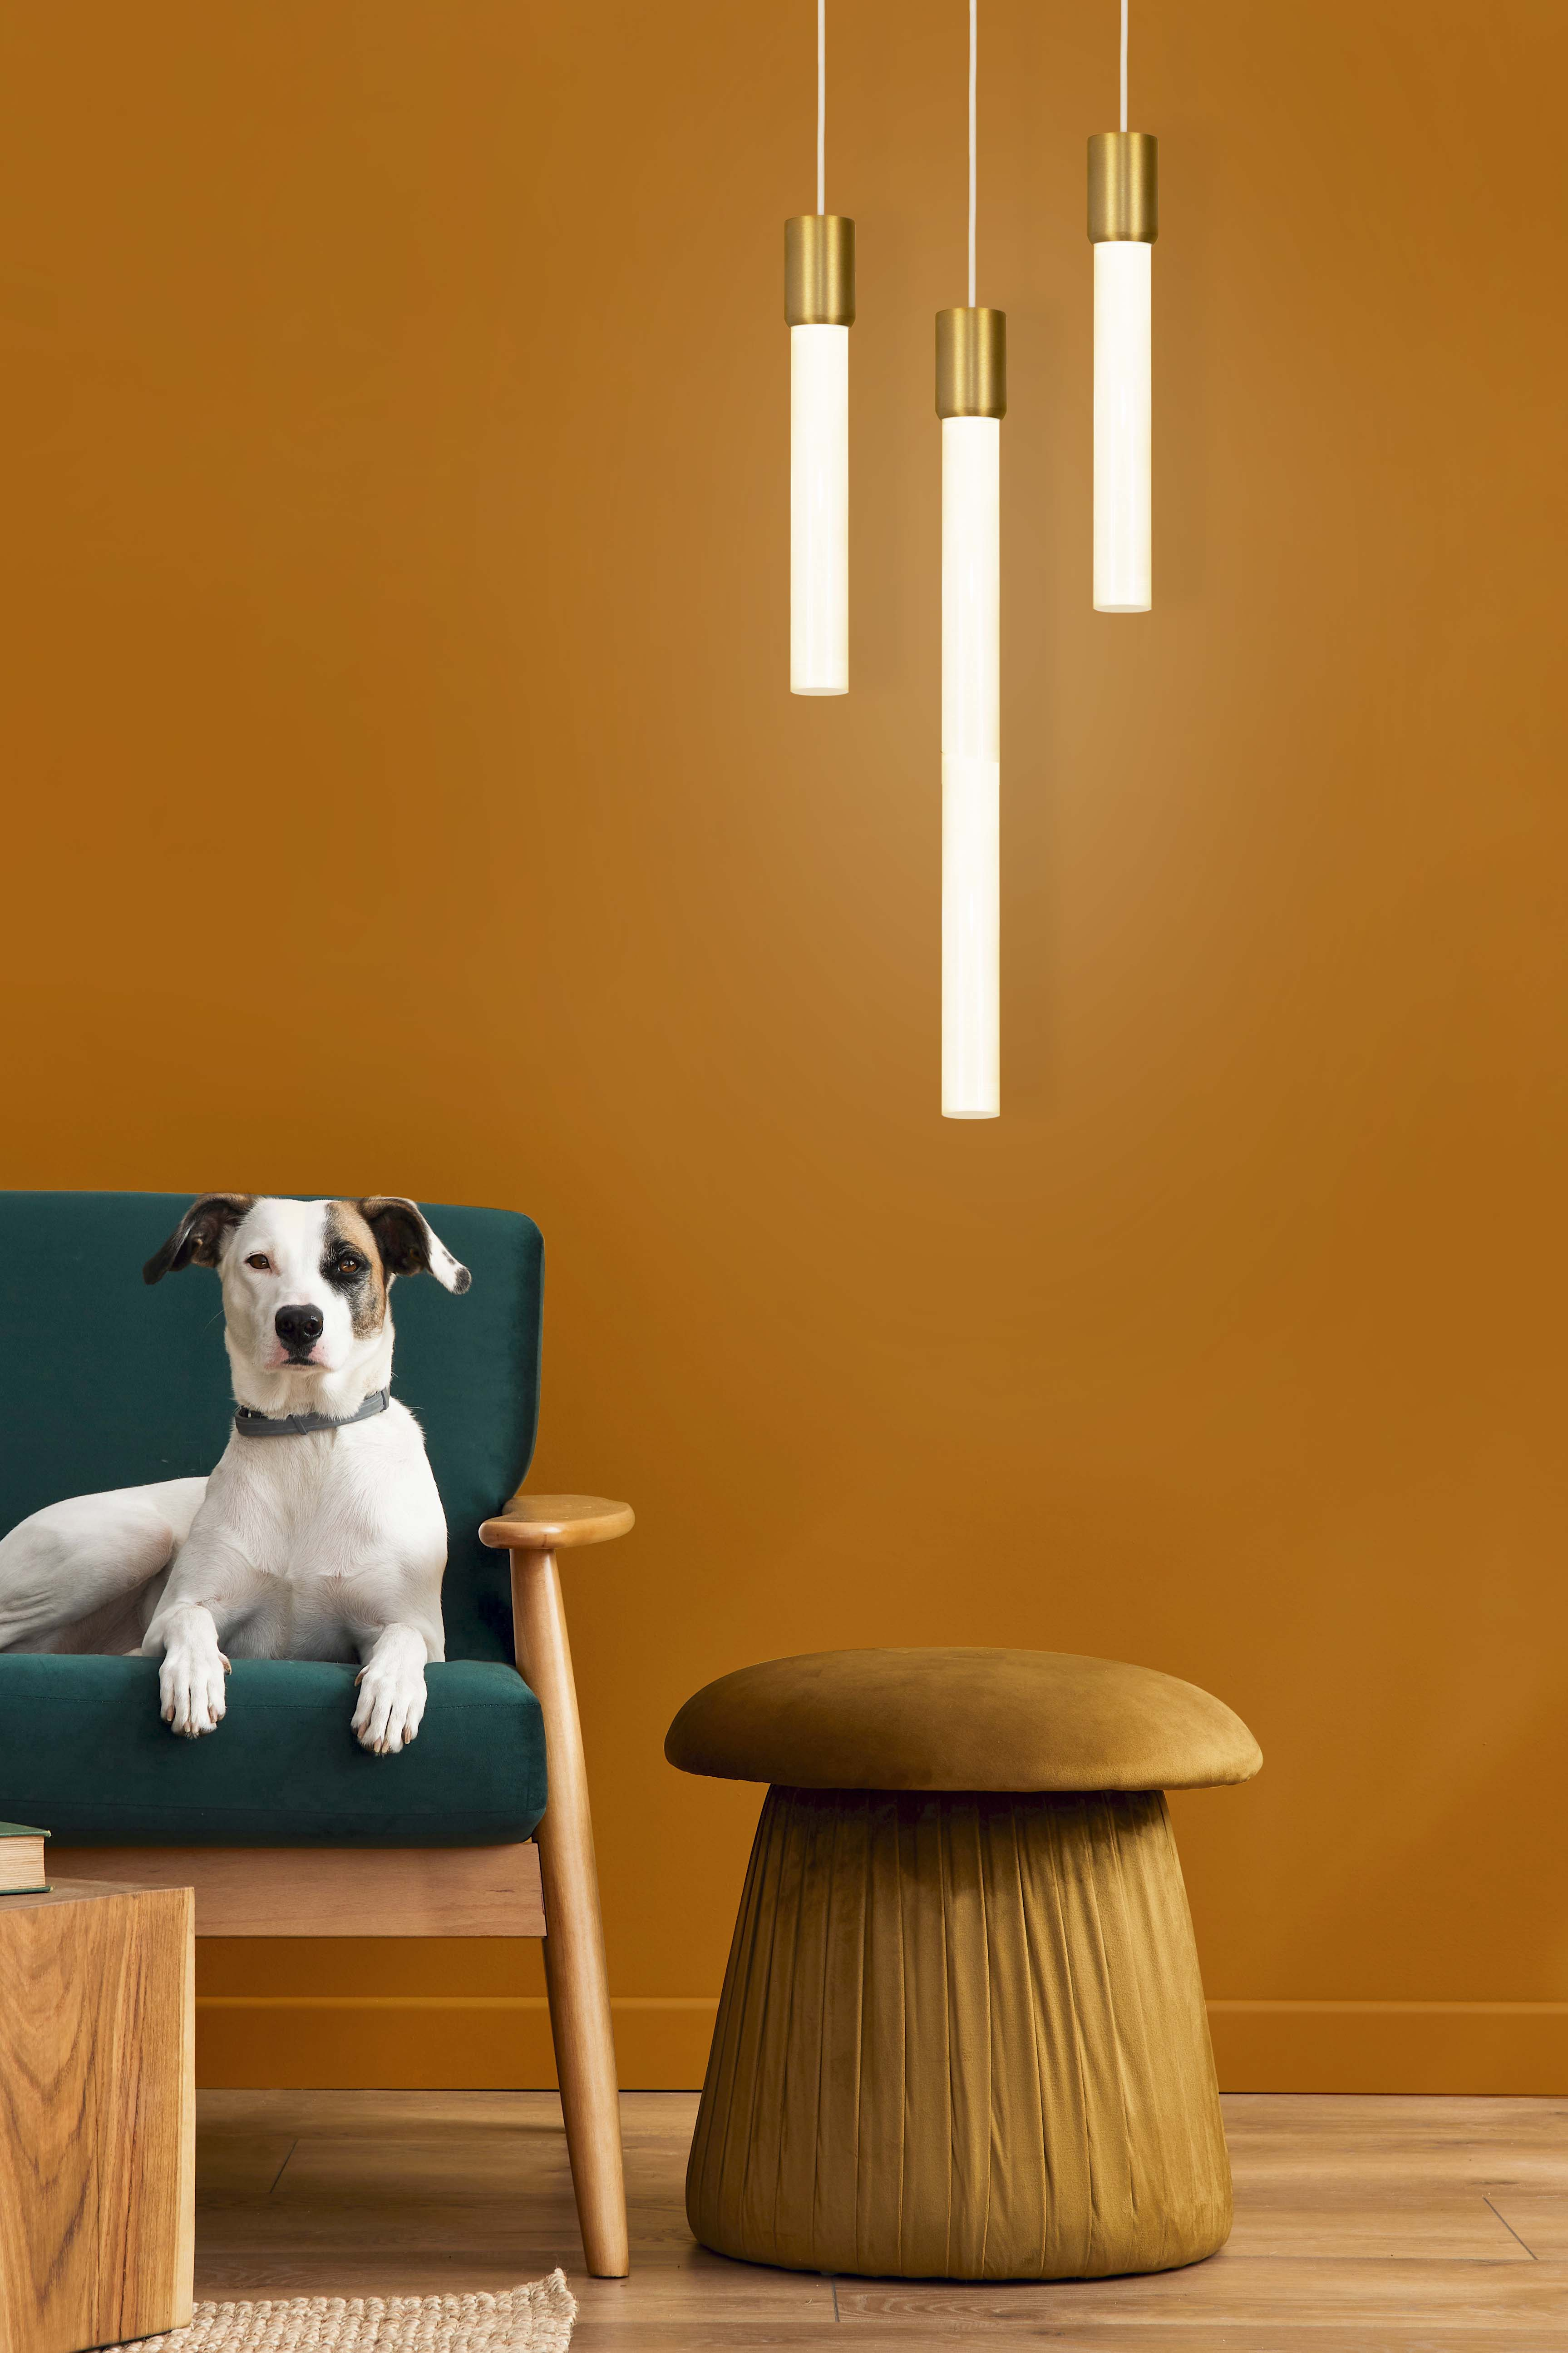 Theo light rod pendant with gold brass finish and blue couch with dog